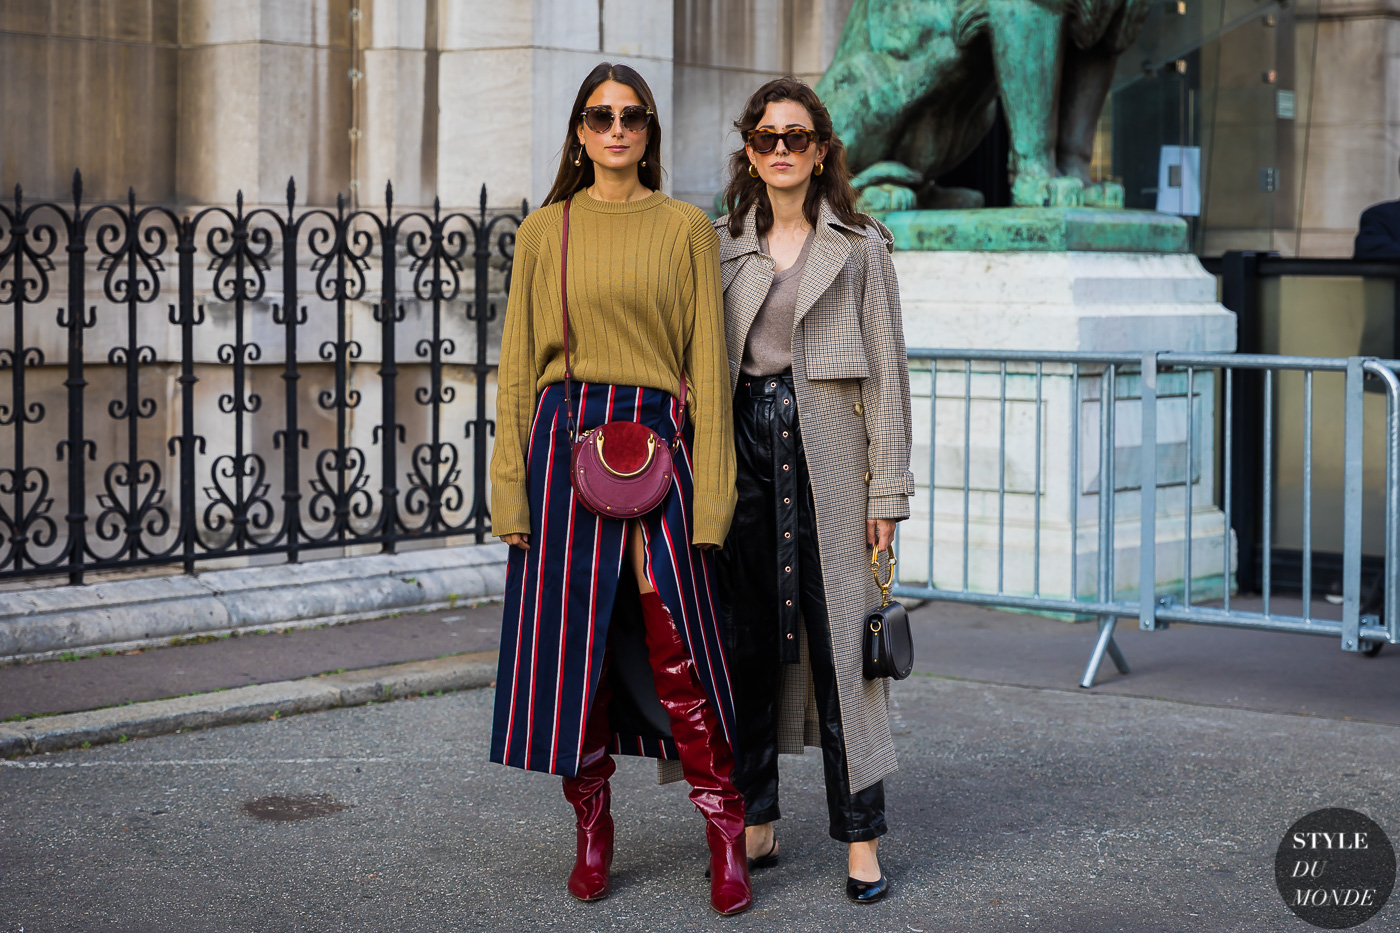 Julia and Sylvia Haghjoo by STYLEDUMONDE Street Style Fashion Photography_48A6902